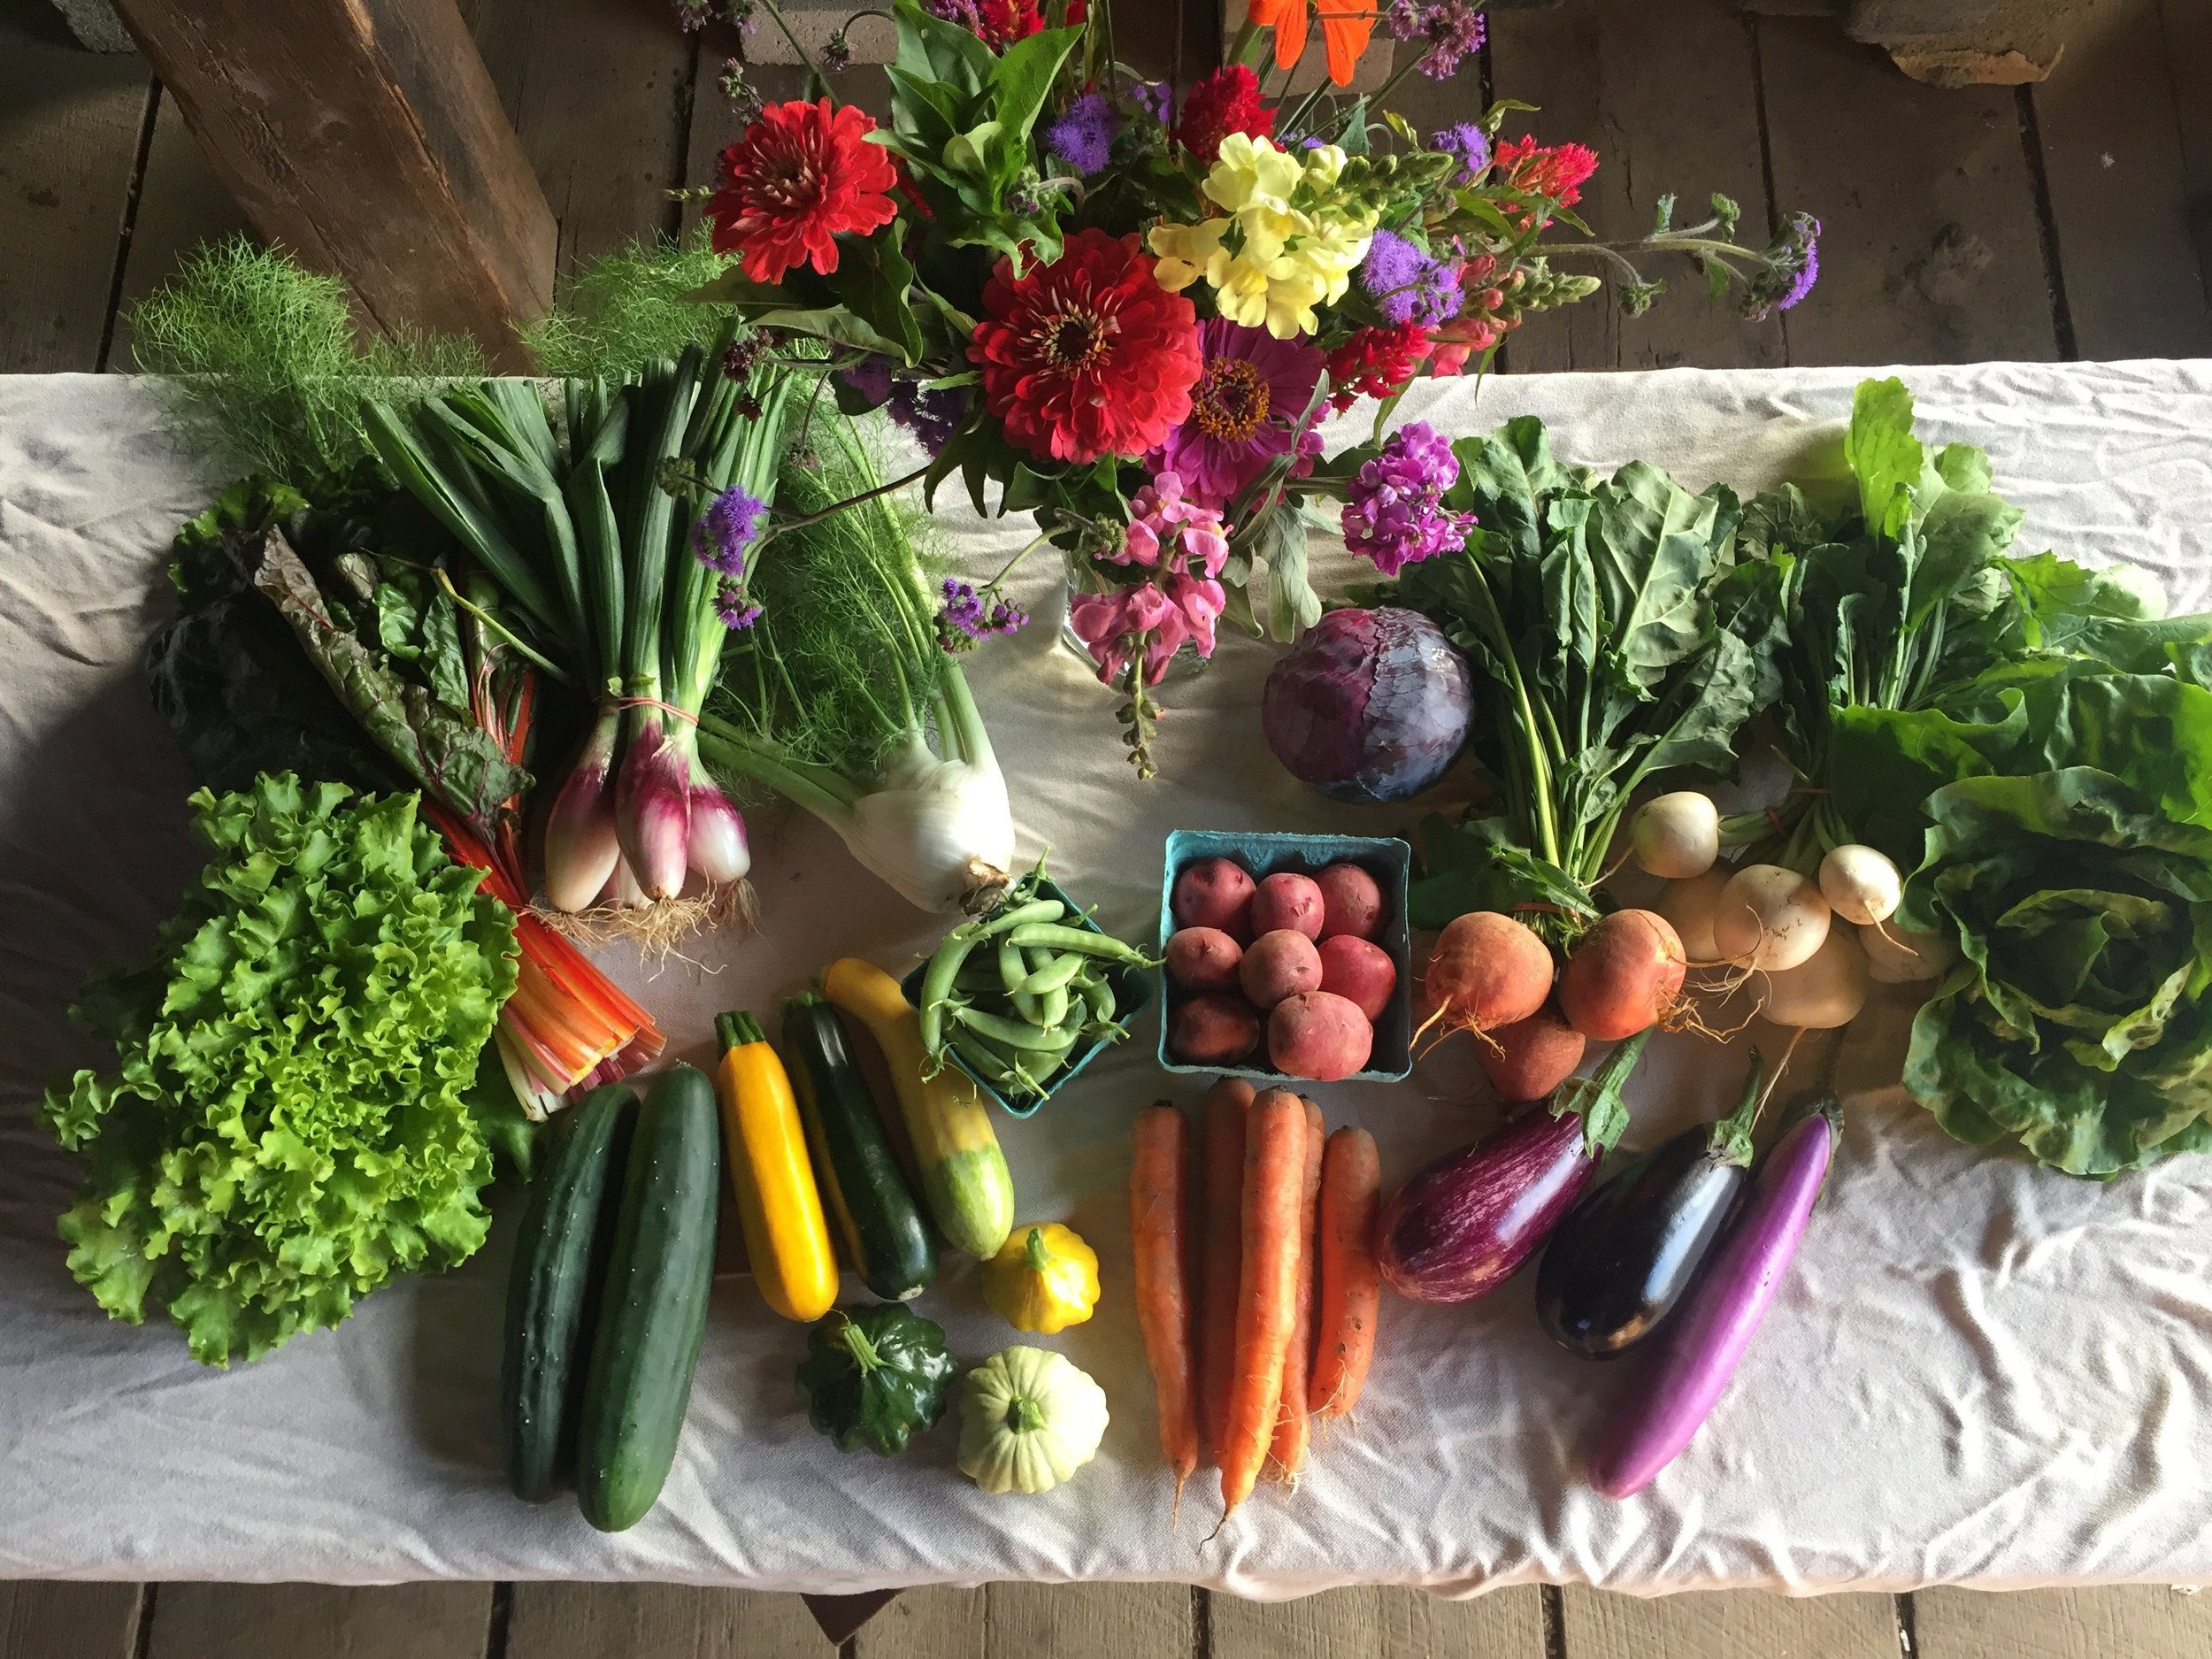 Full share in July, including U-Pick peas and flowers